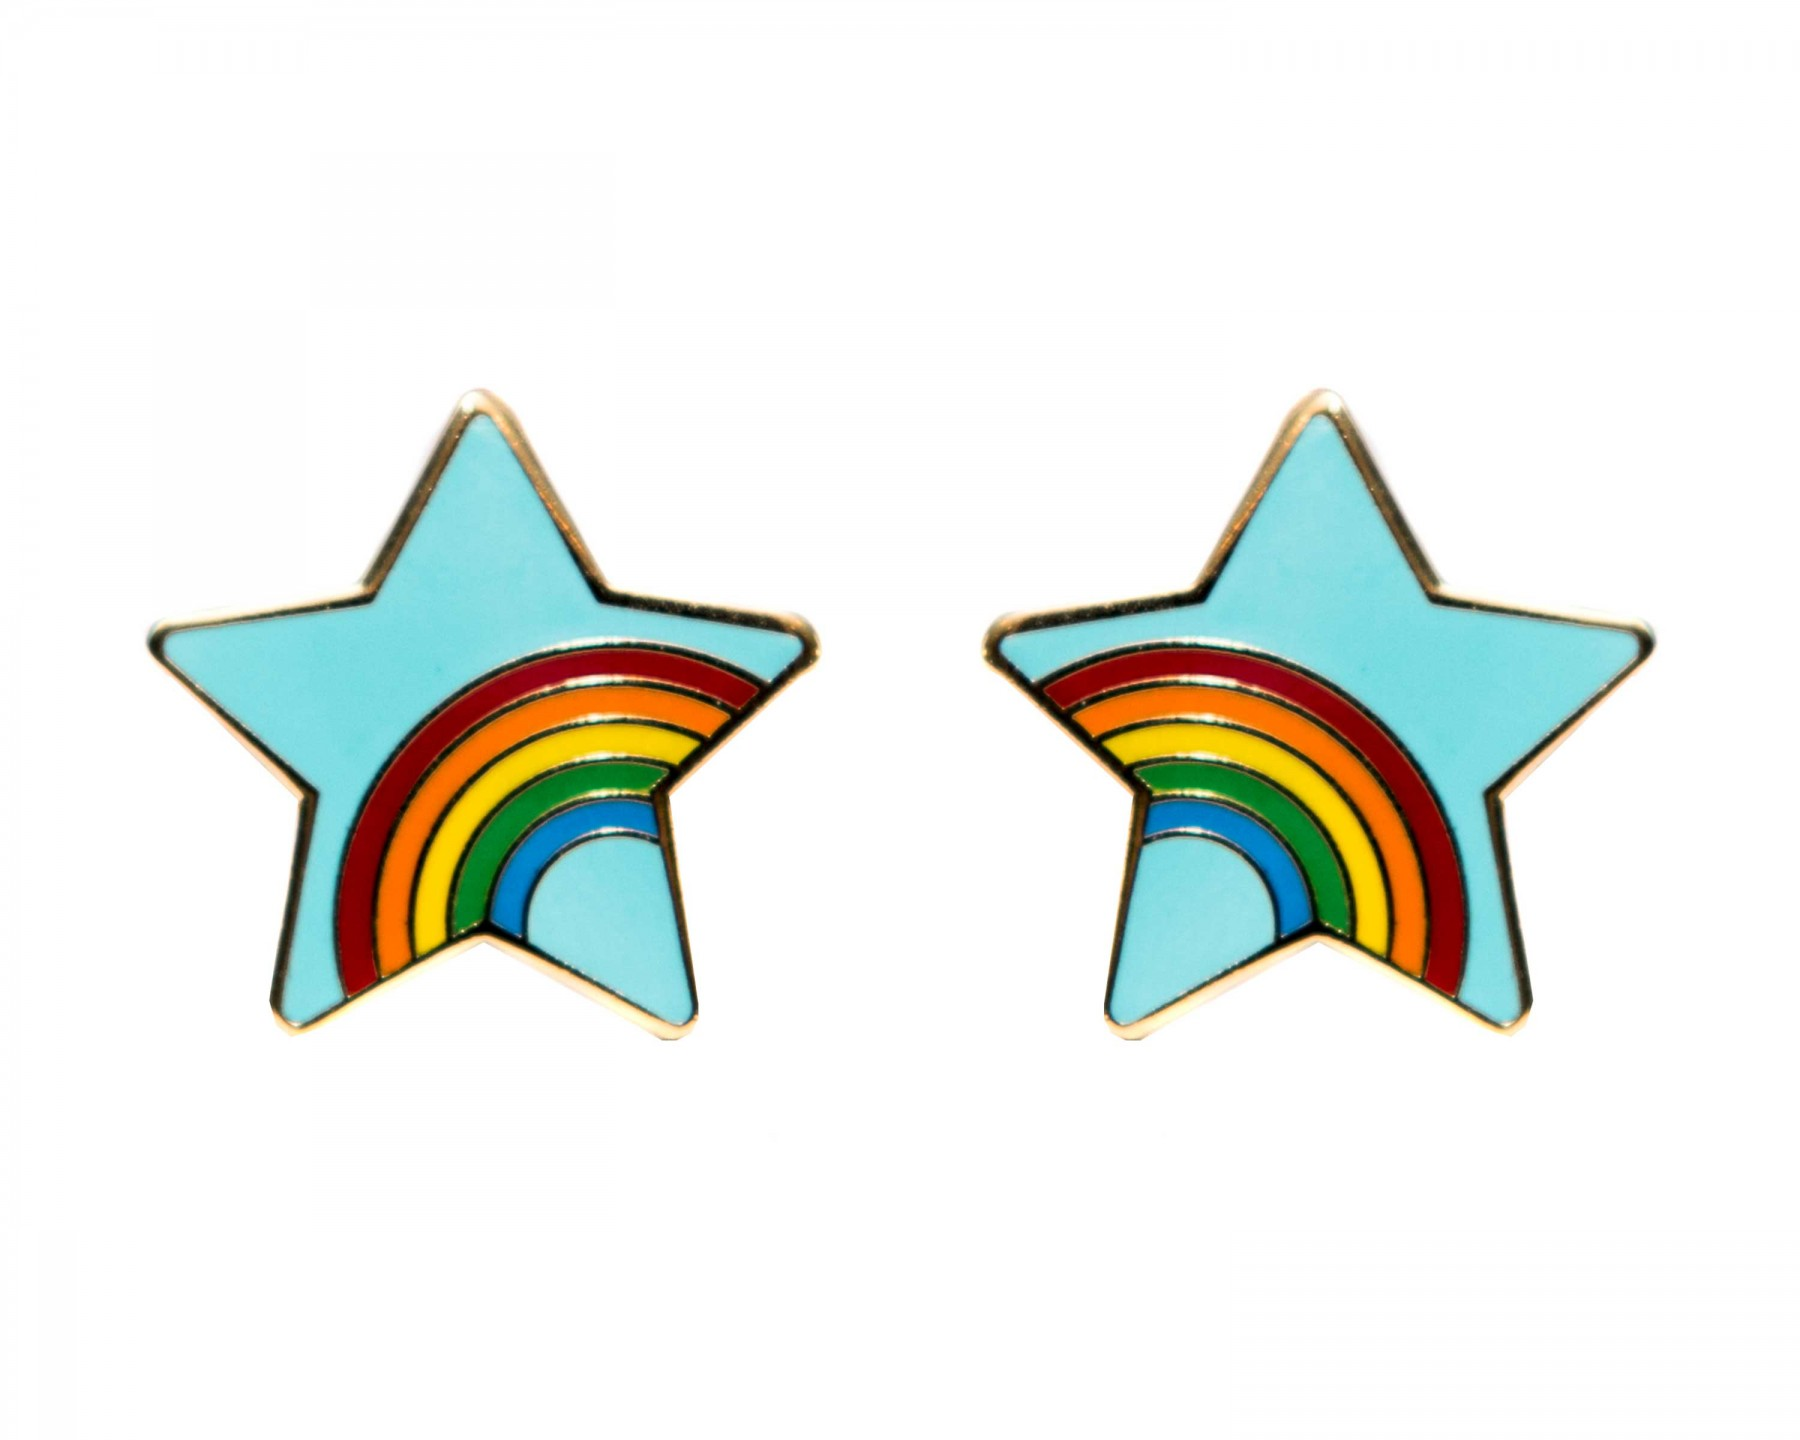 Rainbow star cufflinks